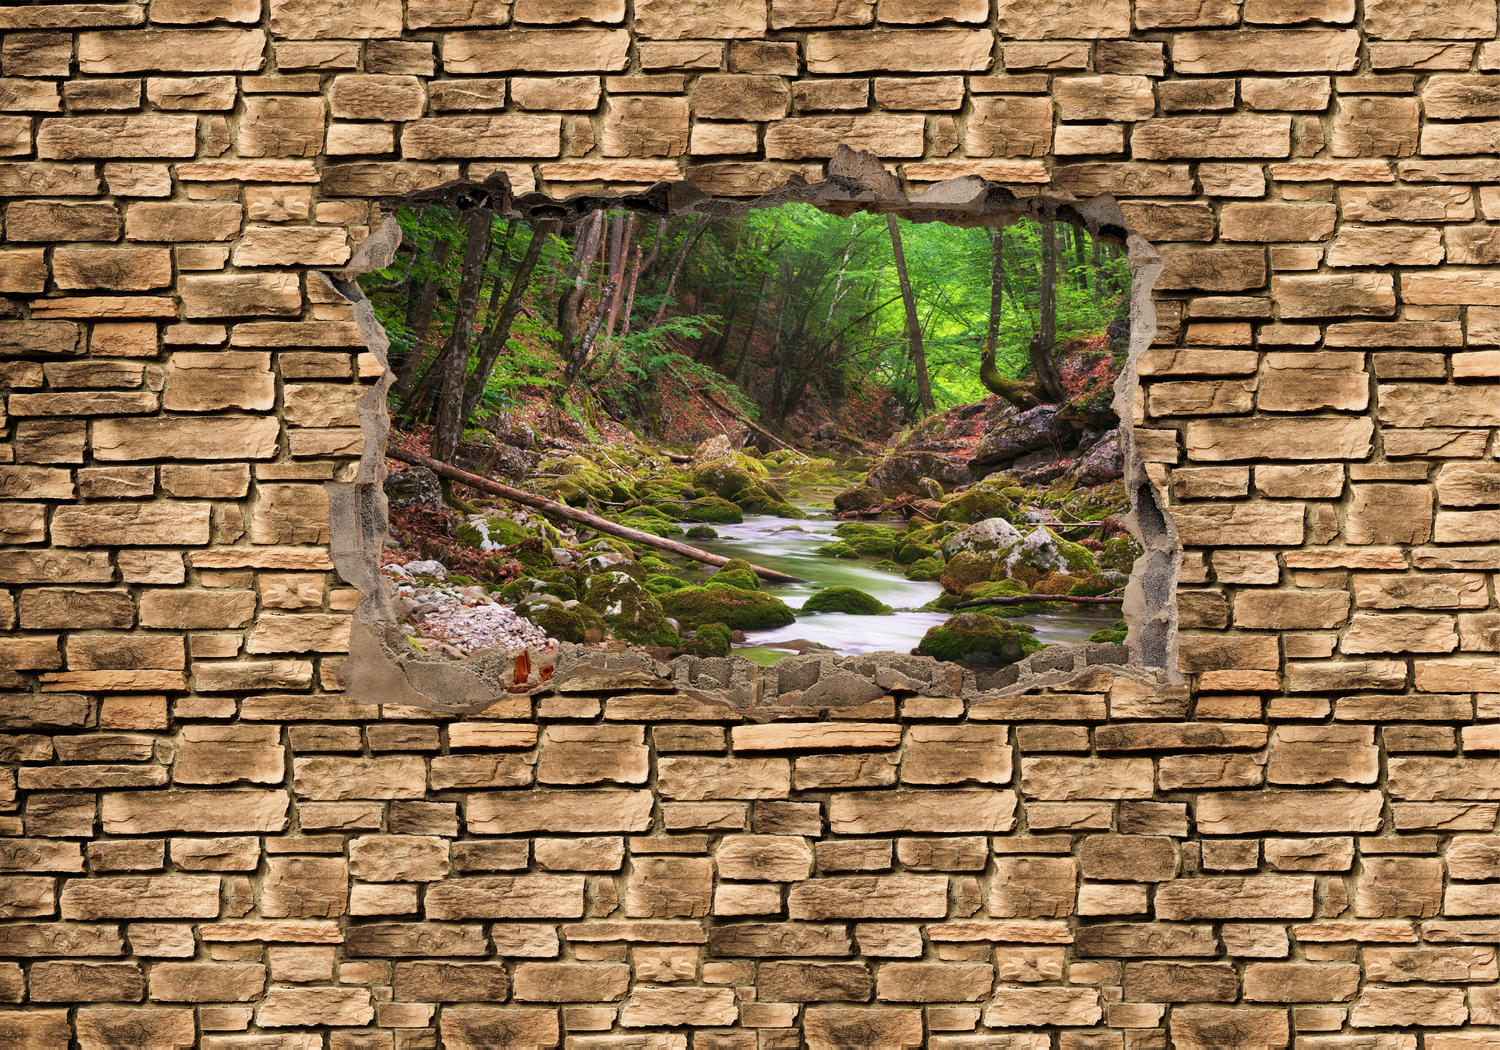 wandmotiv24 fototapete 3d fluss im wald steinmauer vlies tapete m0664 3d motive. Black Bedroom Furniture Sets. Home Design Ideas